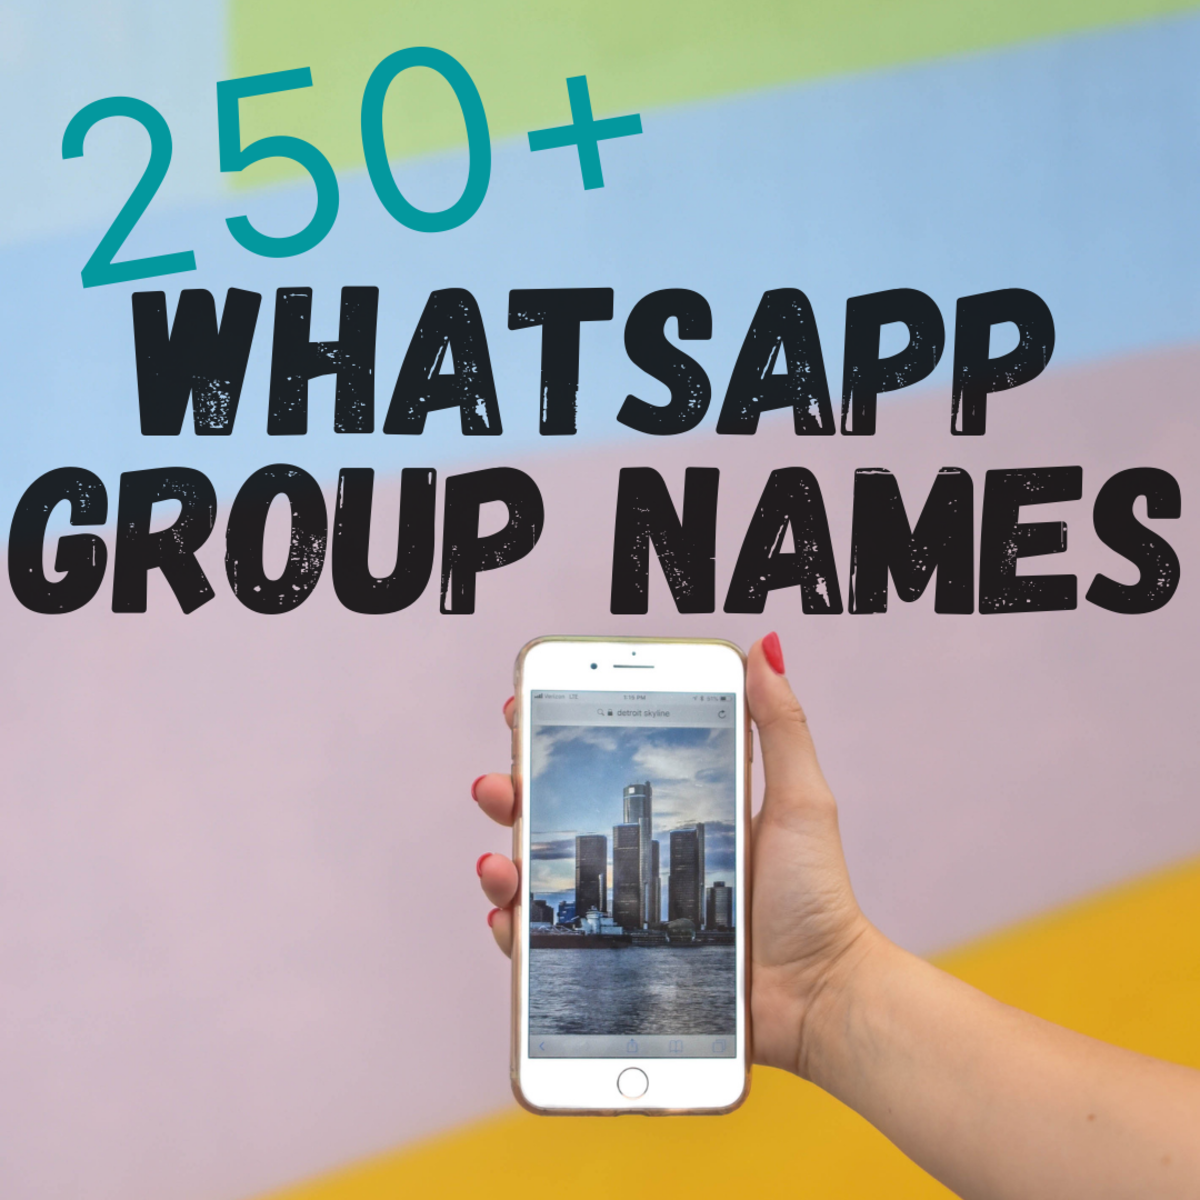 250+ WhatsApp Group Names for friends